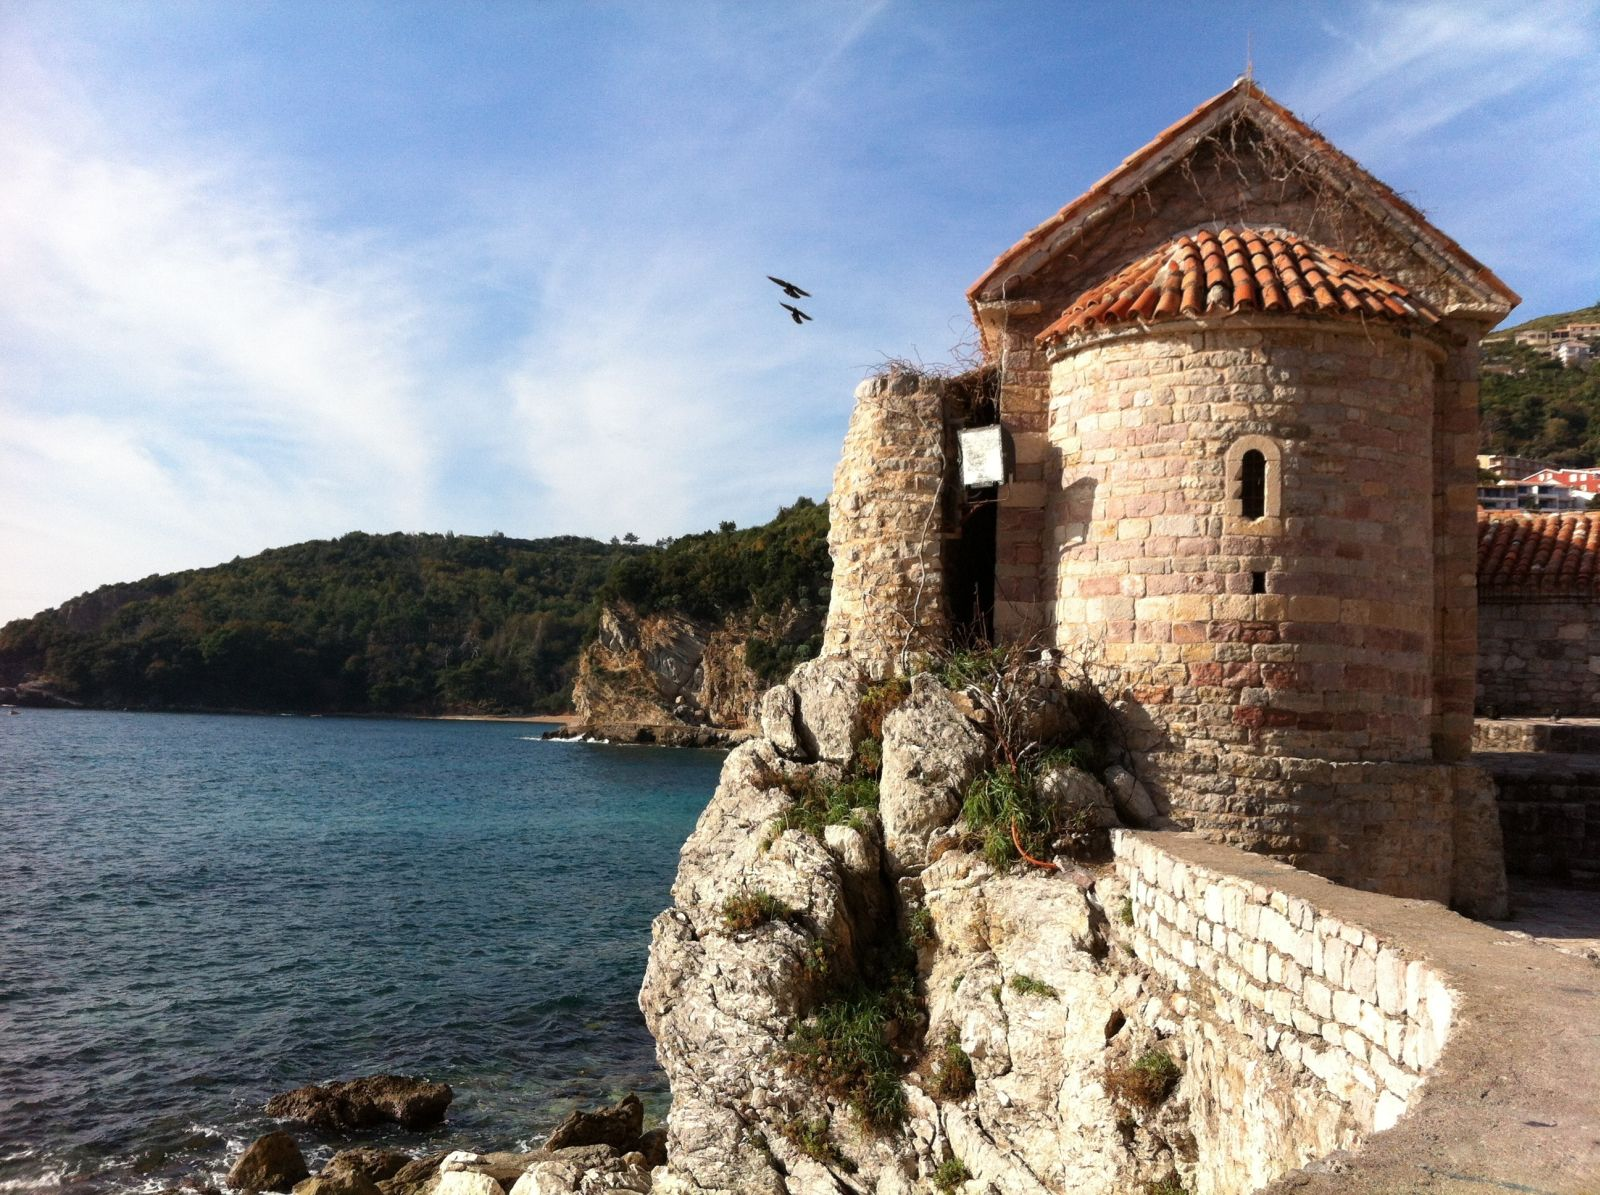 -images-excursions-pearls-of-montenegro--montenegro-day-tour-from-dubrovnik08.jpg